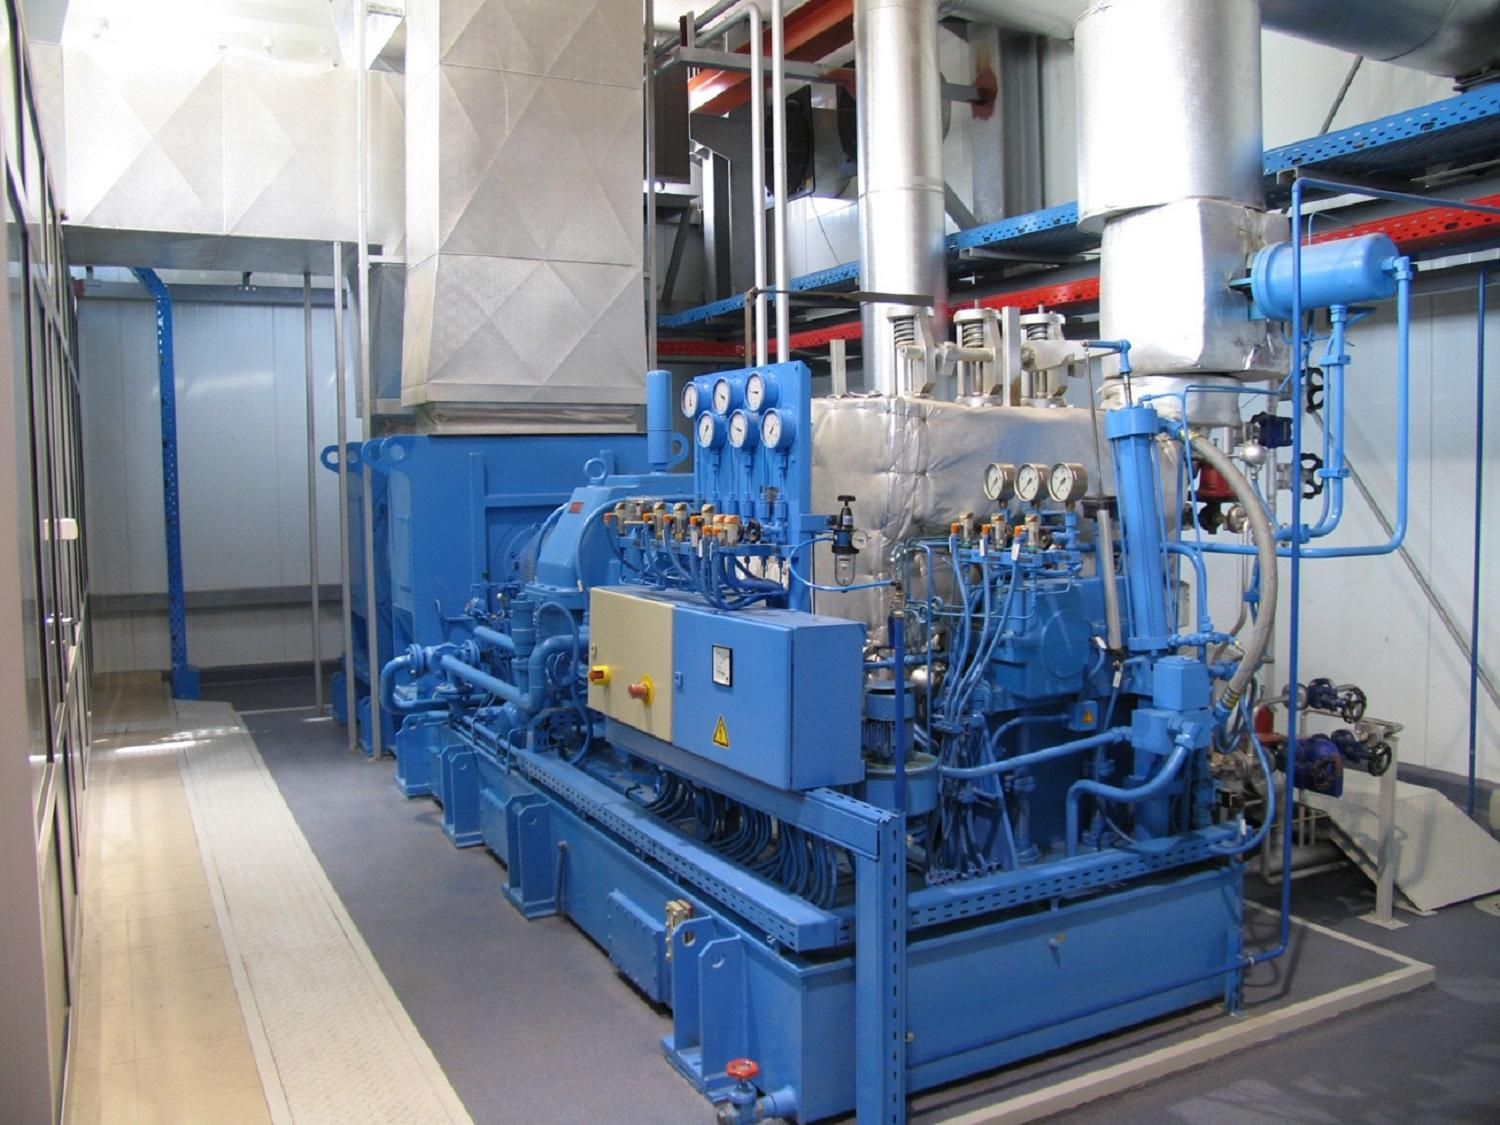 Ics Power Plants Biomass Chp Systems How Electricity Generation From Works Technology Cogeneration Plant 293x220